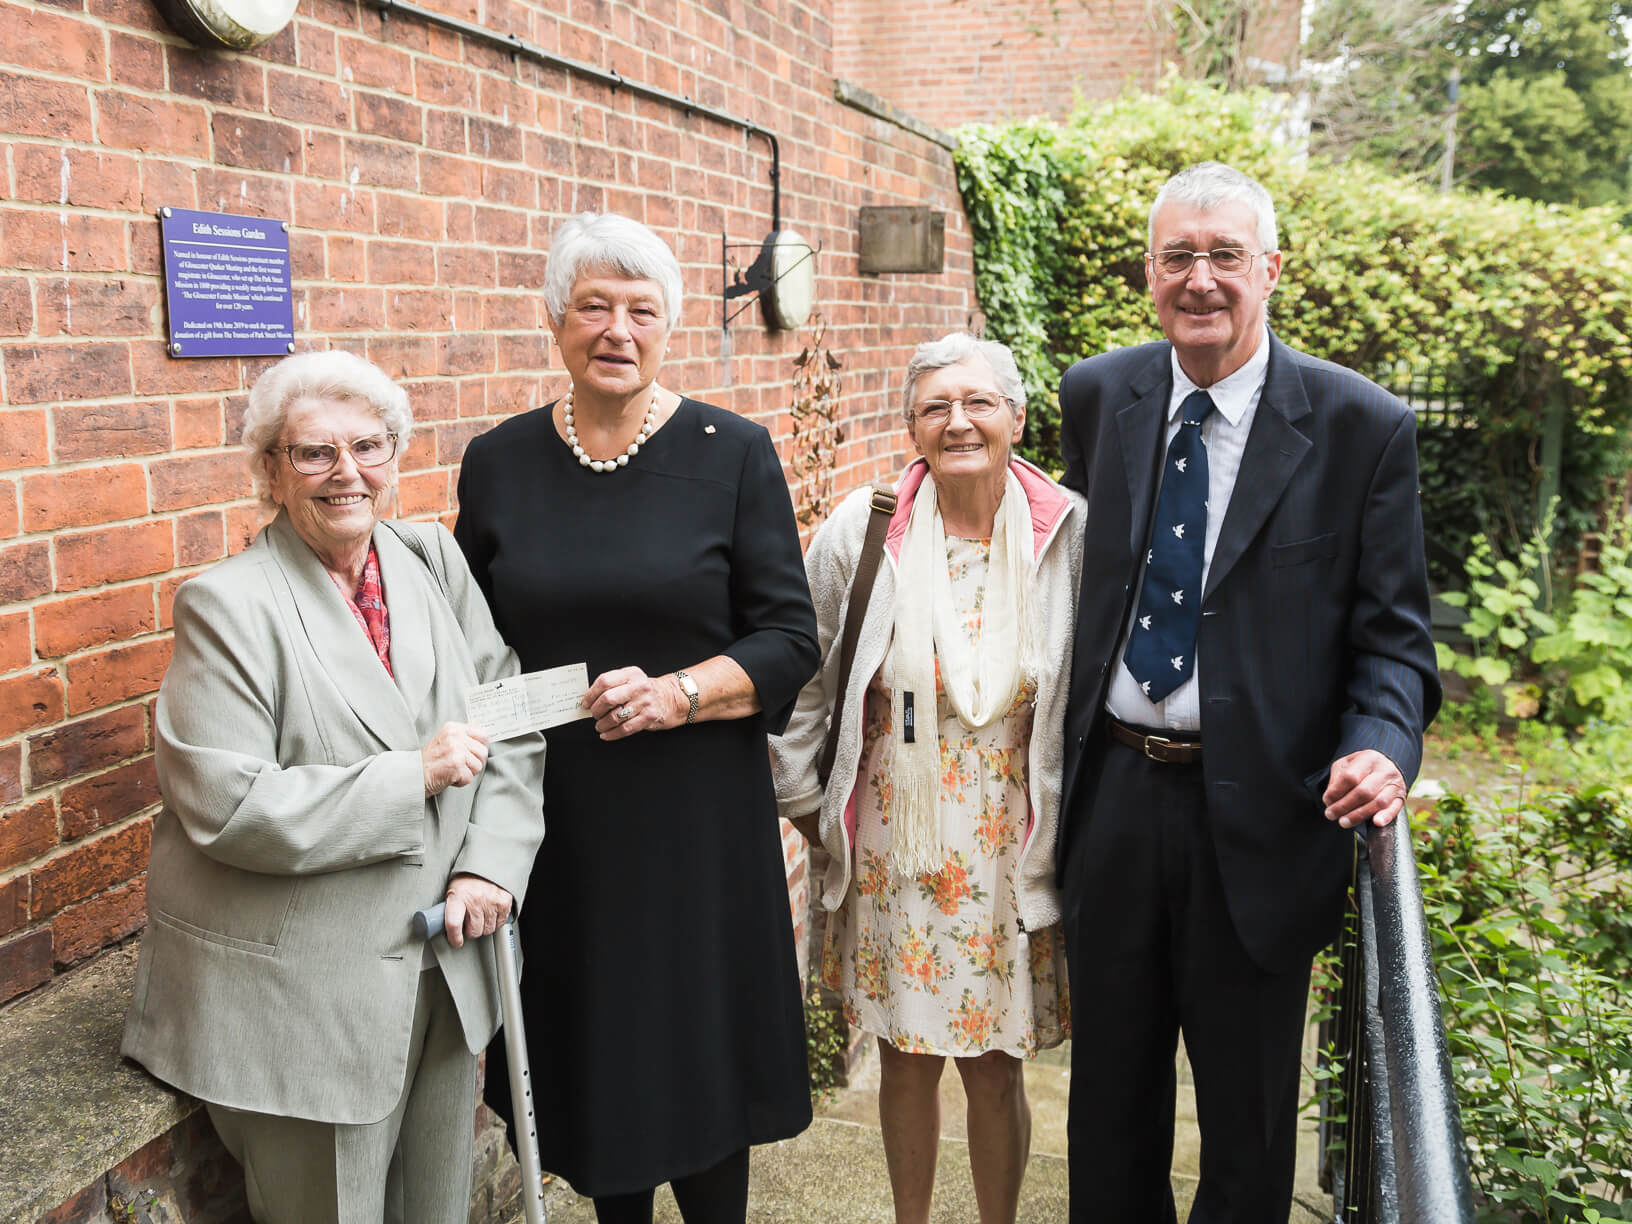 Jacqui Green (left), leader of the Park Street Mission from 1969 - 2018, hands a cheque from the sale of their Park Street building to Dame Janet Trotter, Chair of Trustees at The Nelson Trust, with Park Street Mission Trustees Pat and Andrew Turrall (right).